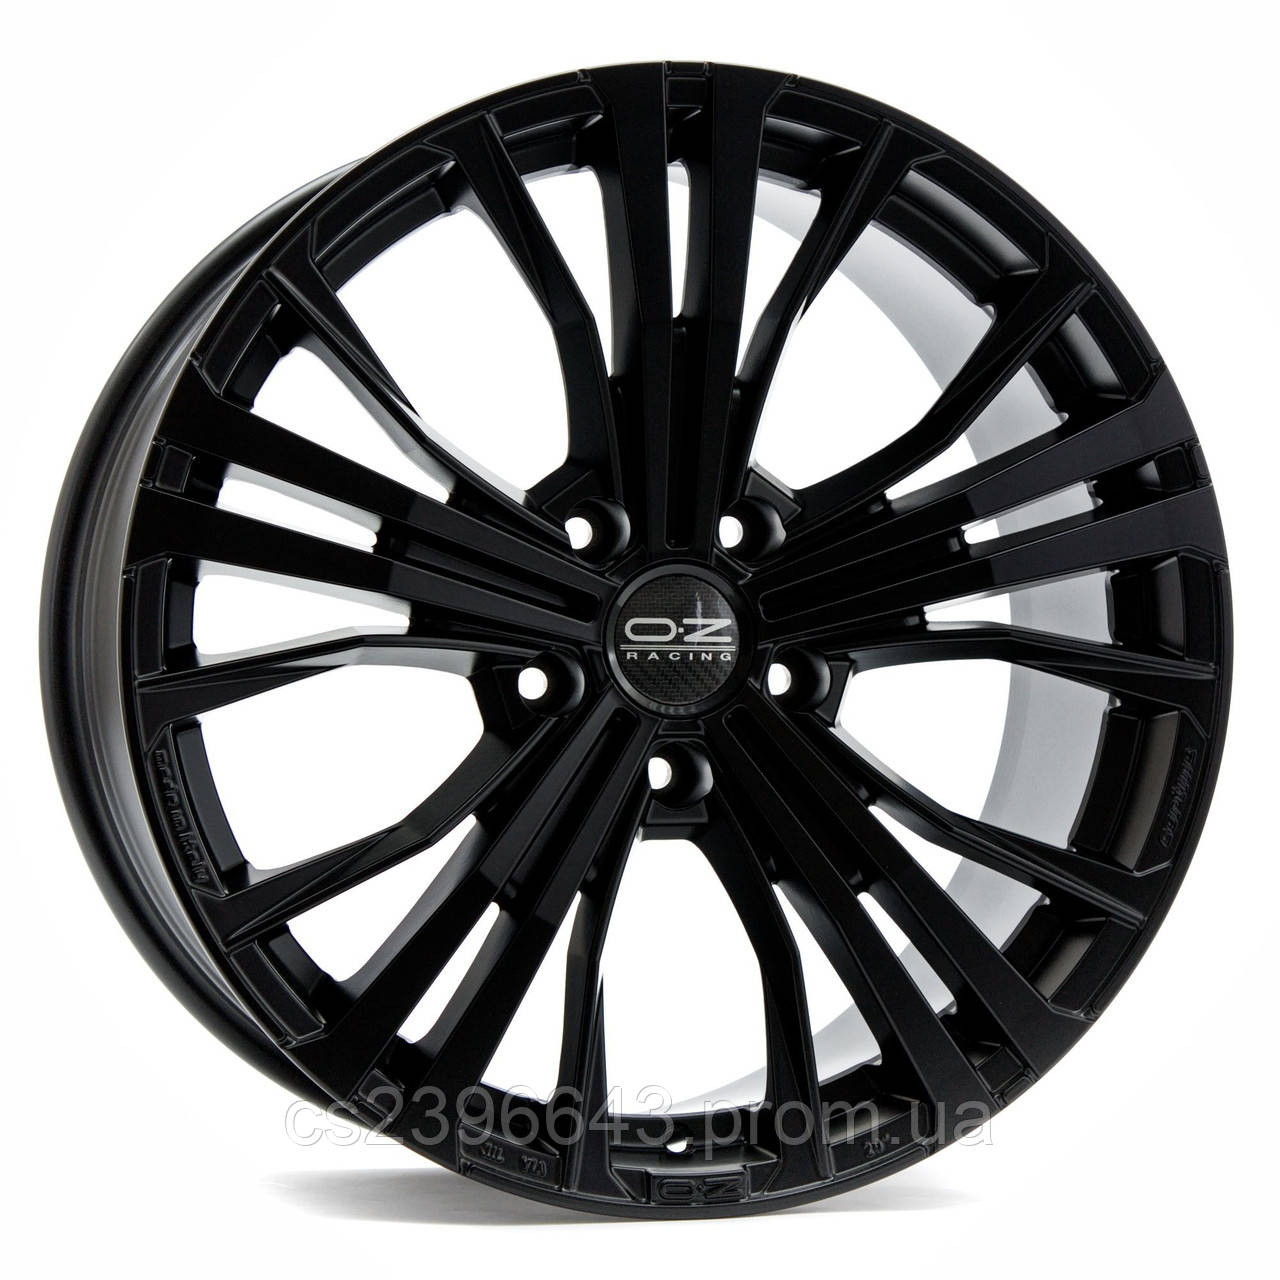 Колесный диск OZ Cortina 19x9 ET26